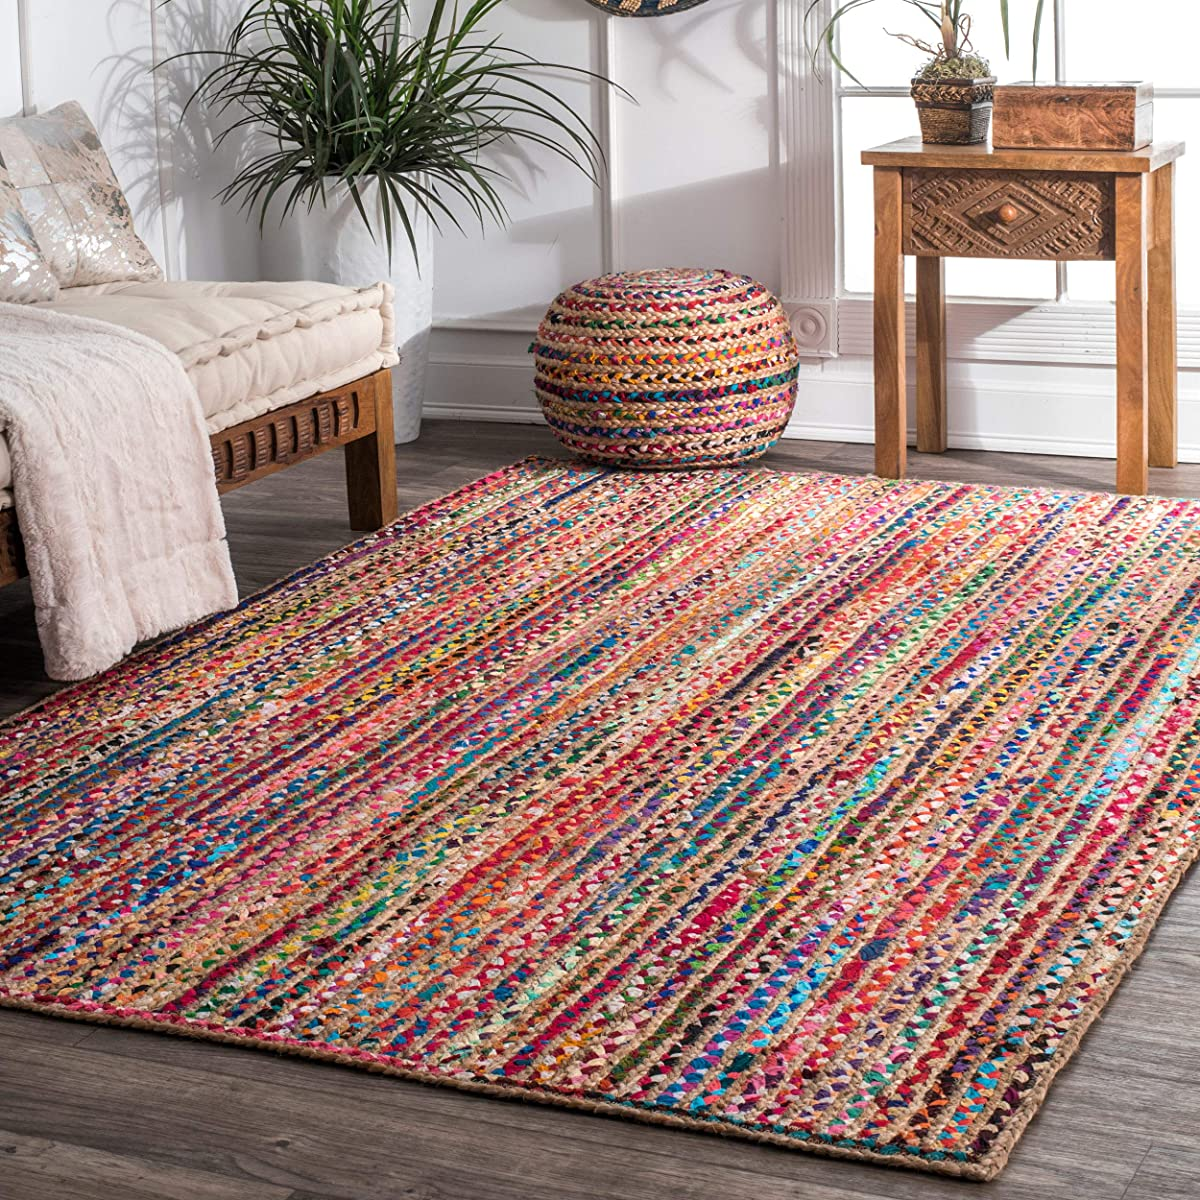 nuLOOM 200MGNM05A-609 Aleen Braided Cotton/Jute Area Rug, 6 x 9